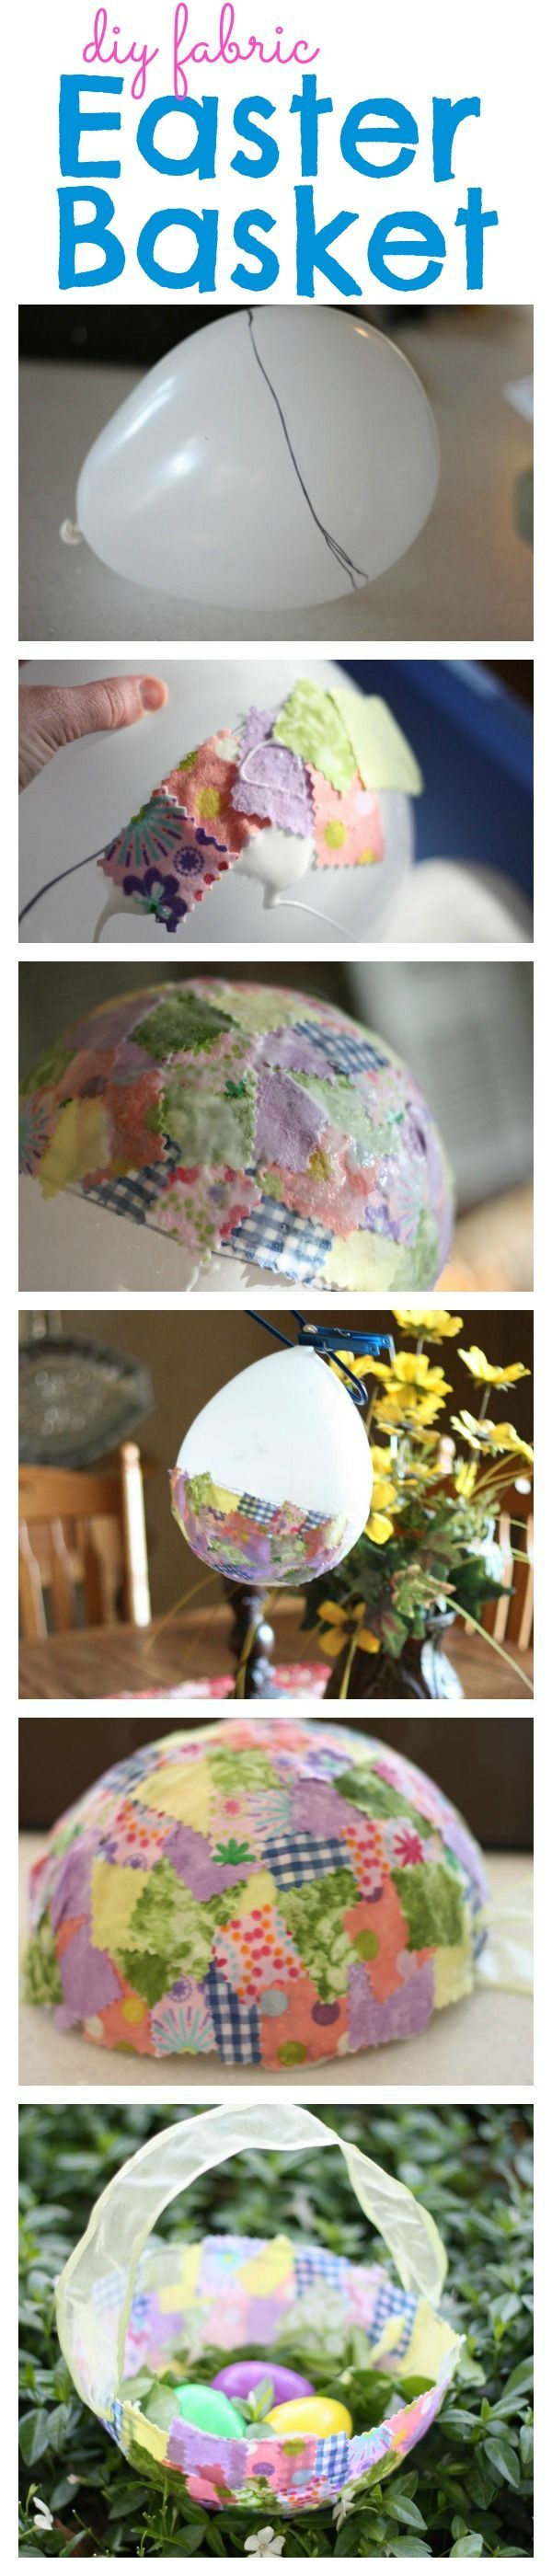 Except it being a basket make it into a large fabric egg. Seeing as the mod podge will keep